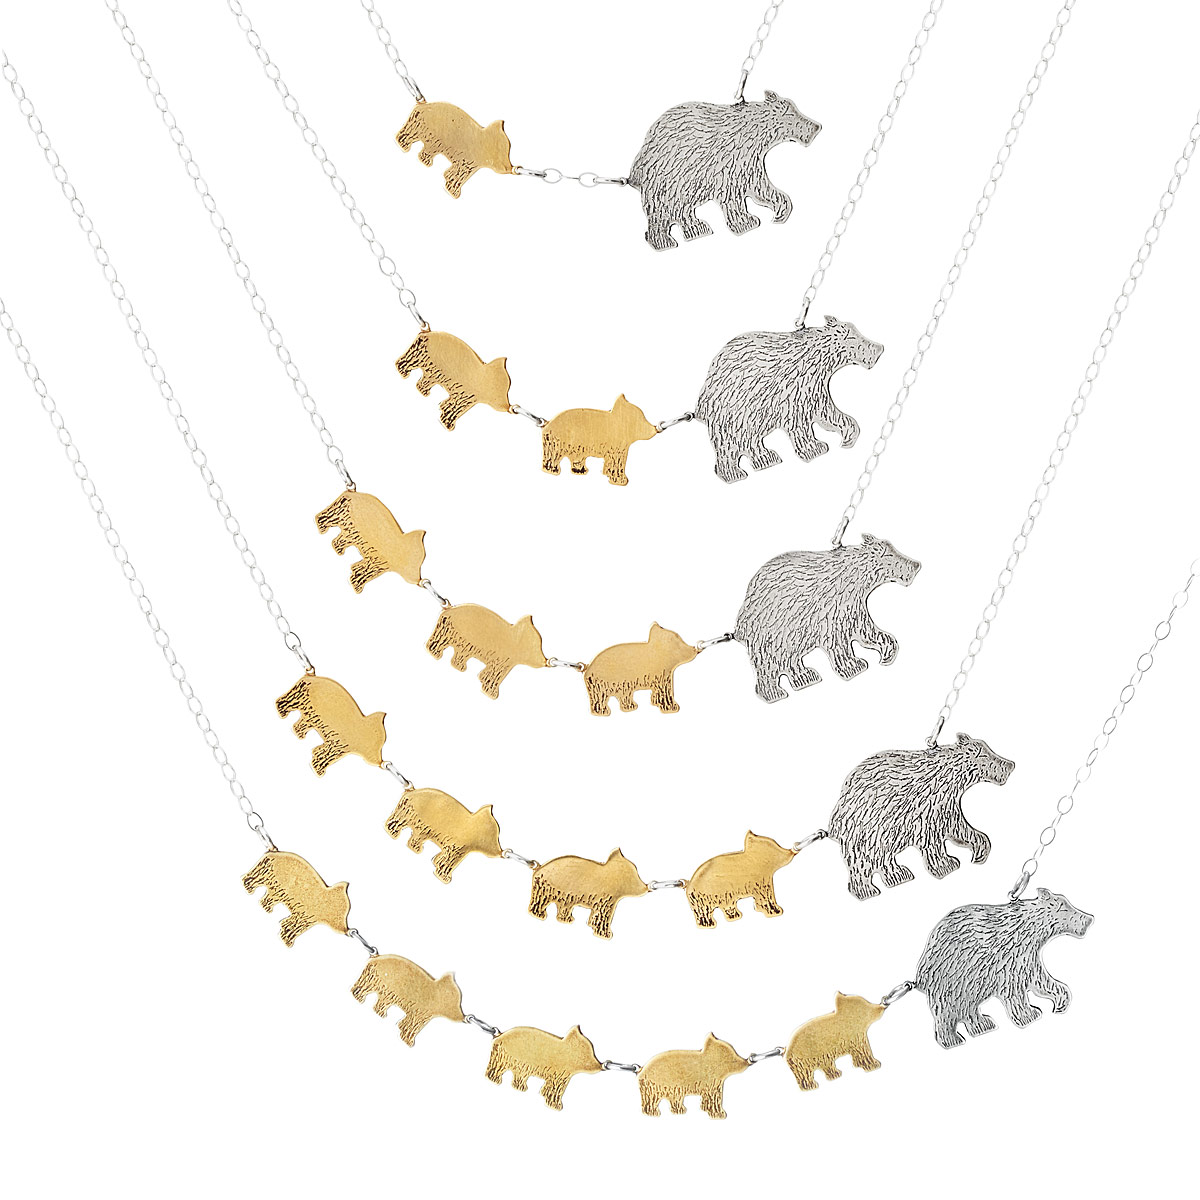 Mother's Day clipart mama bear Necklaces UncommonGoods Jewelry thumbnail Necklaces